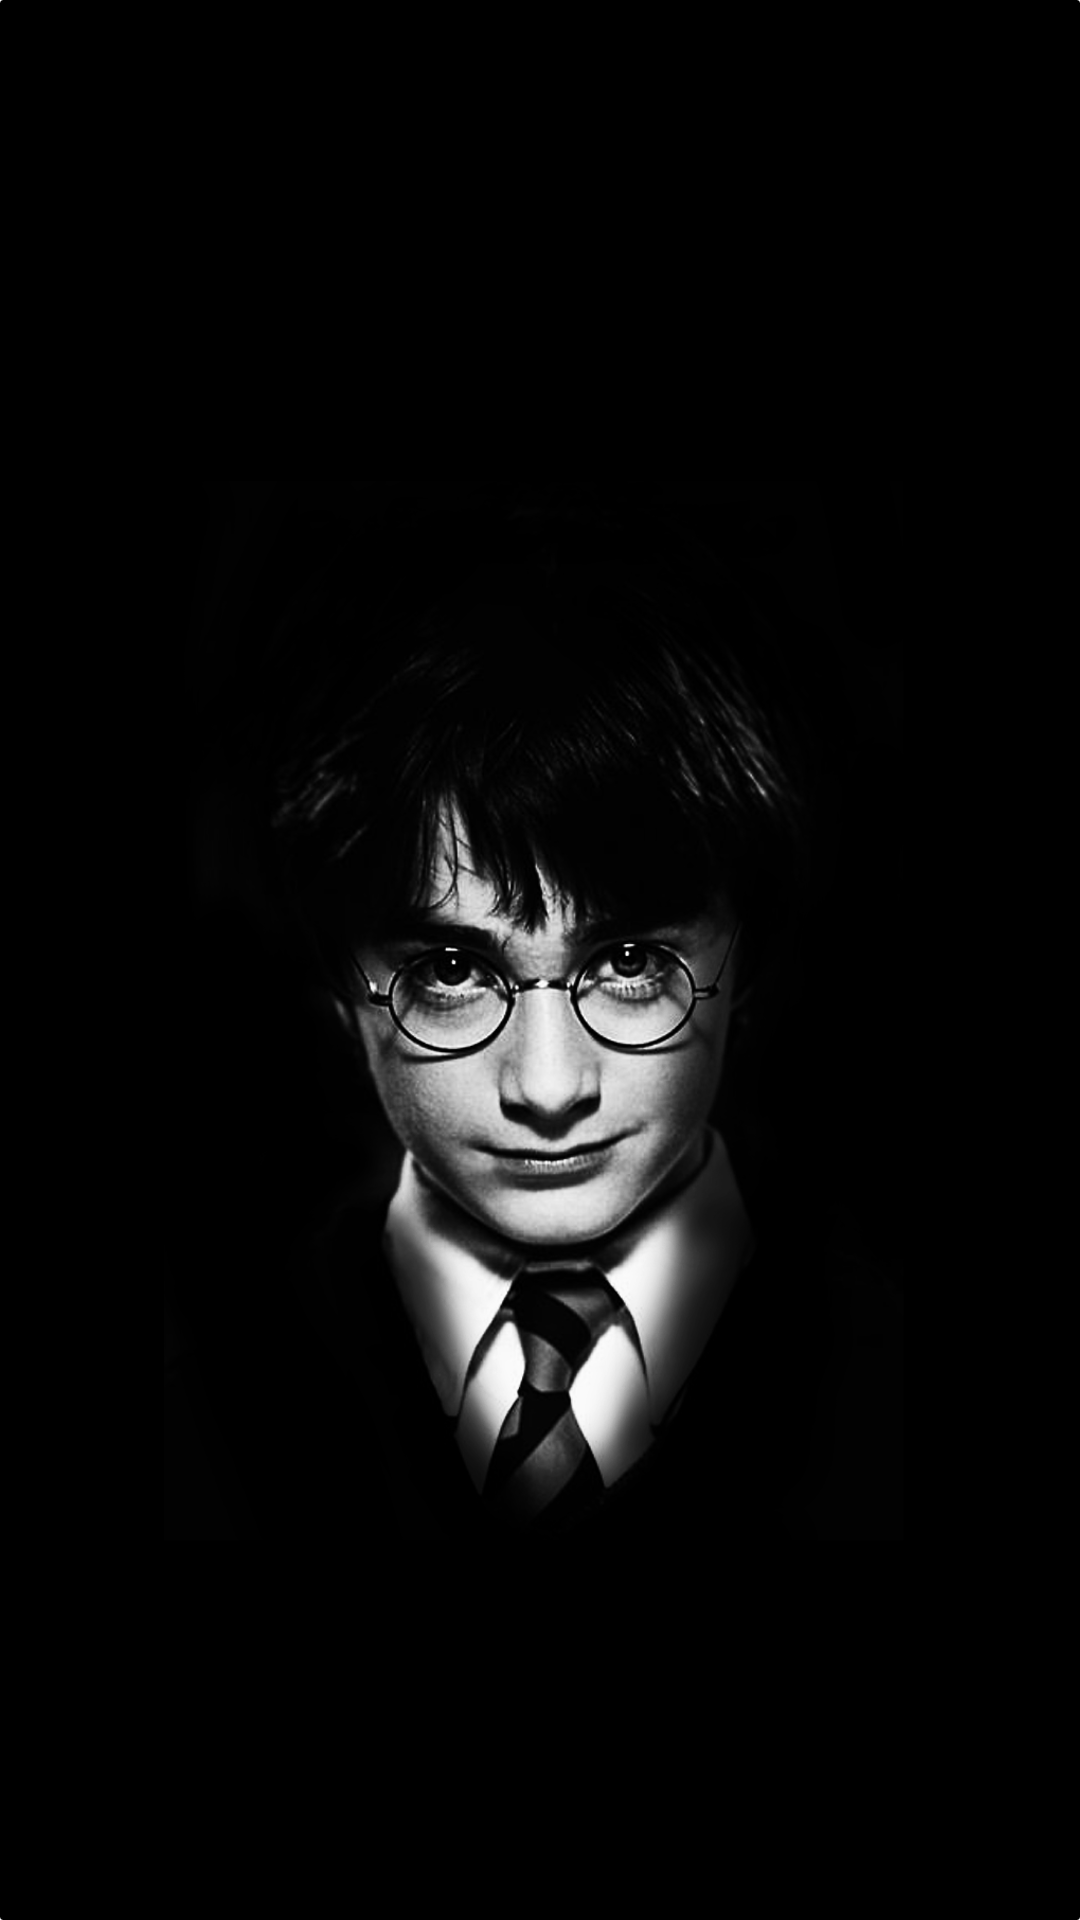 harry potter 2016 iphone wallpaper